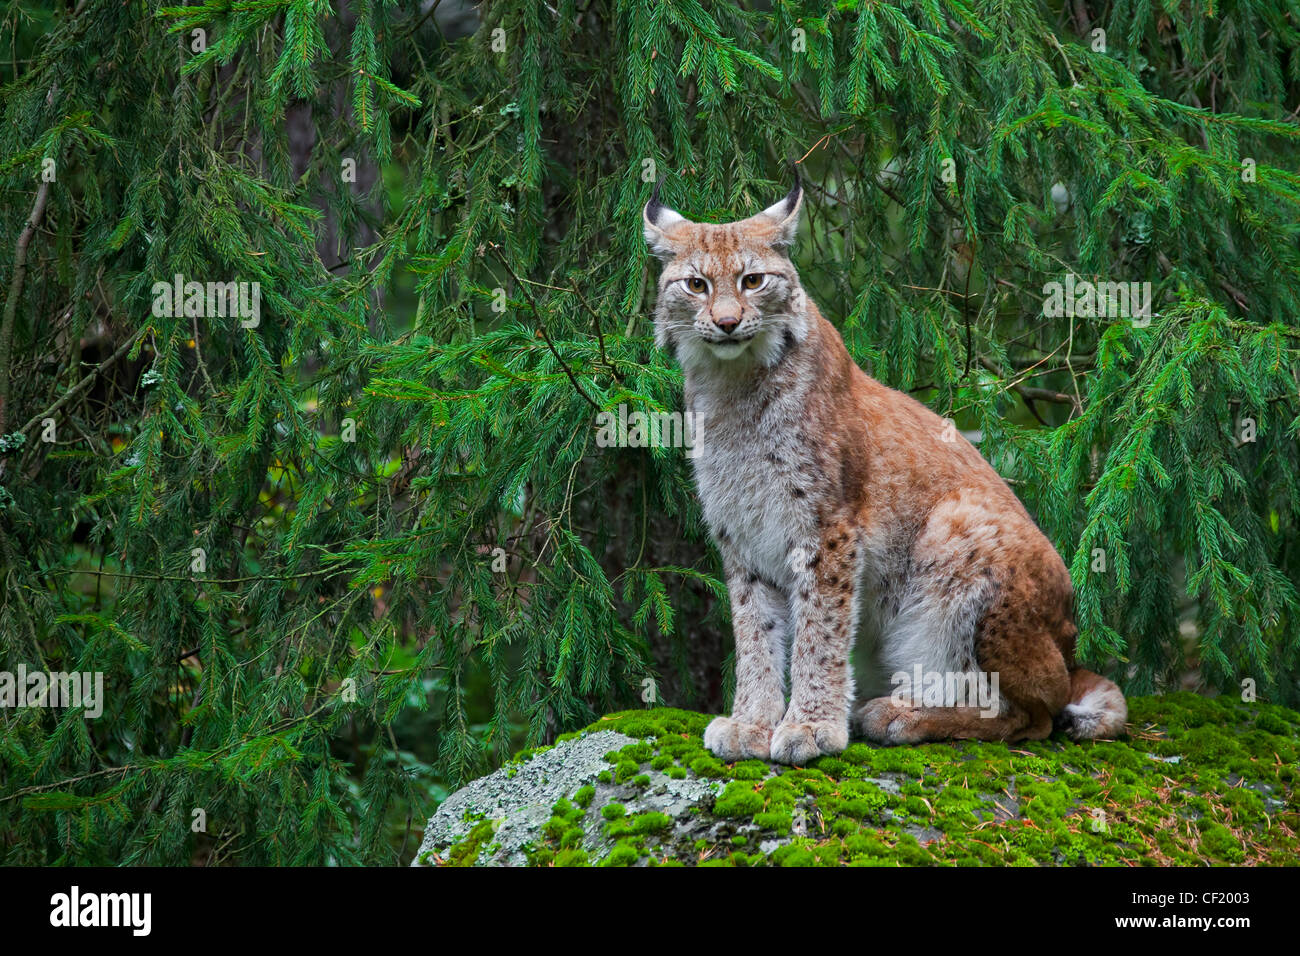 Eurasian lynx (Lynx lynx) sitting on rock in pine forest, Sweden - Stock Image